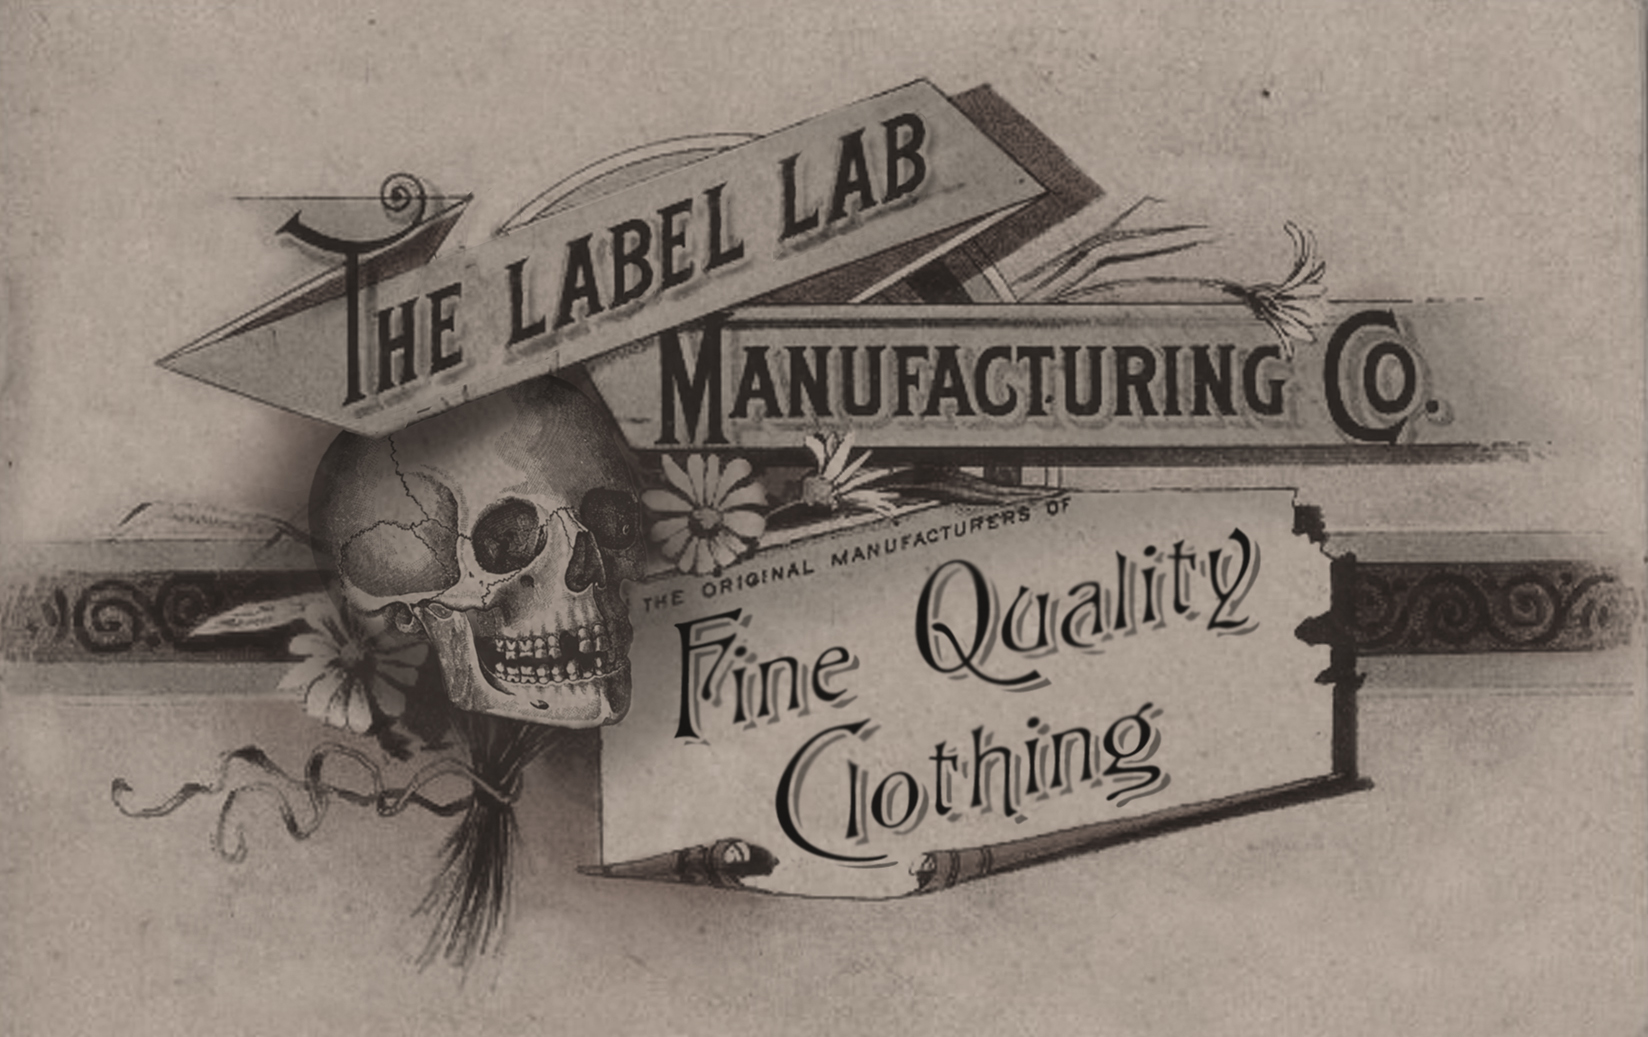 manufacturing co